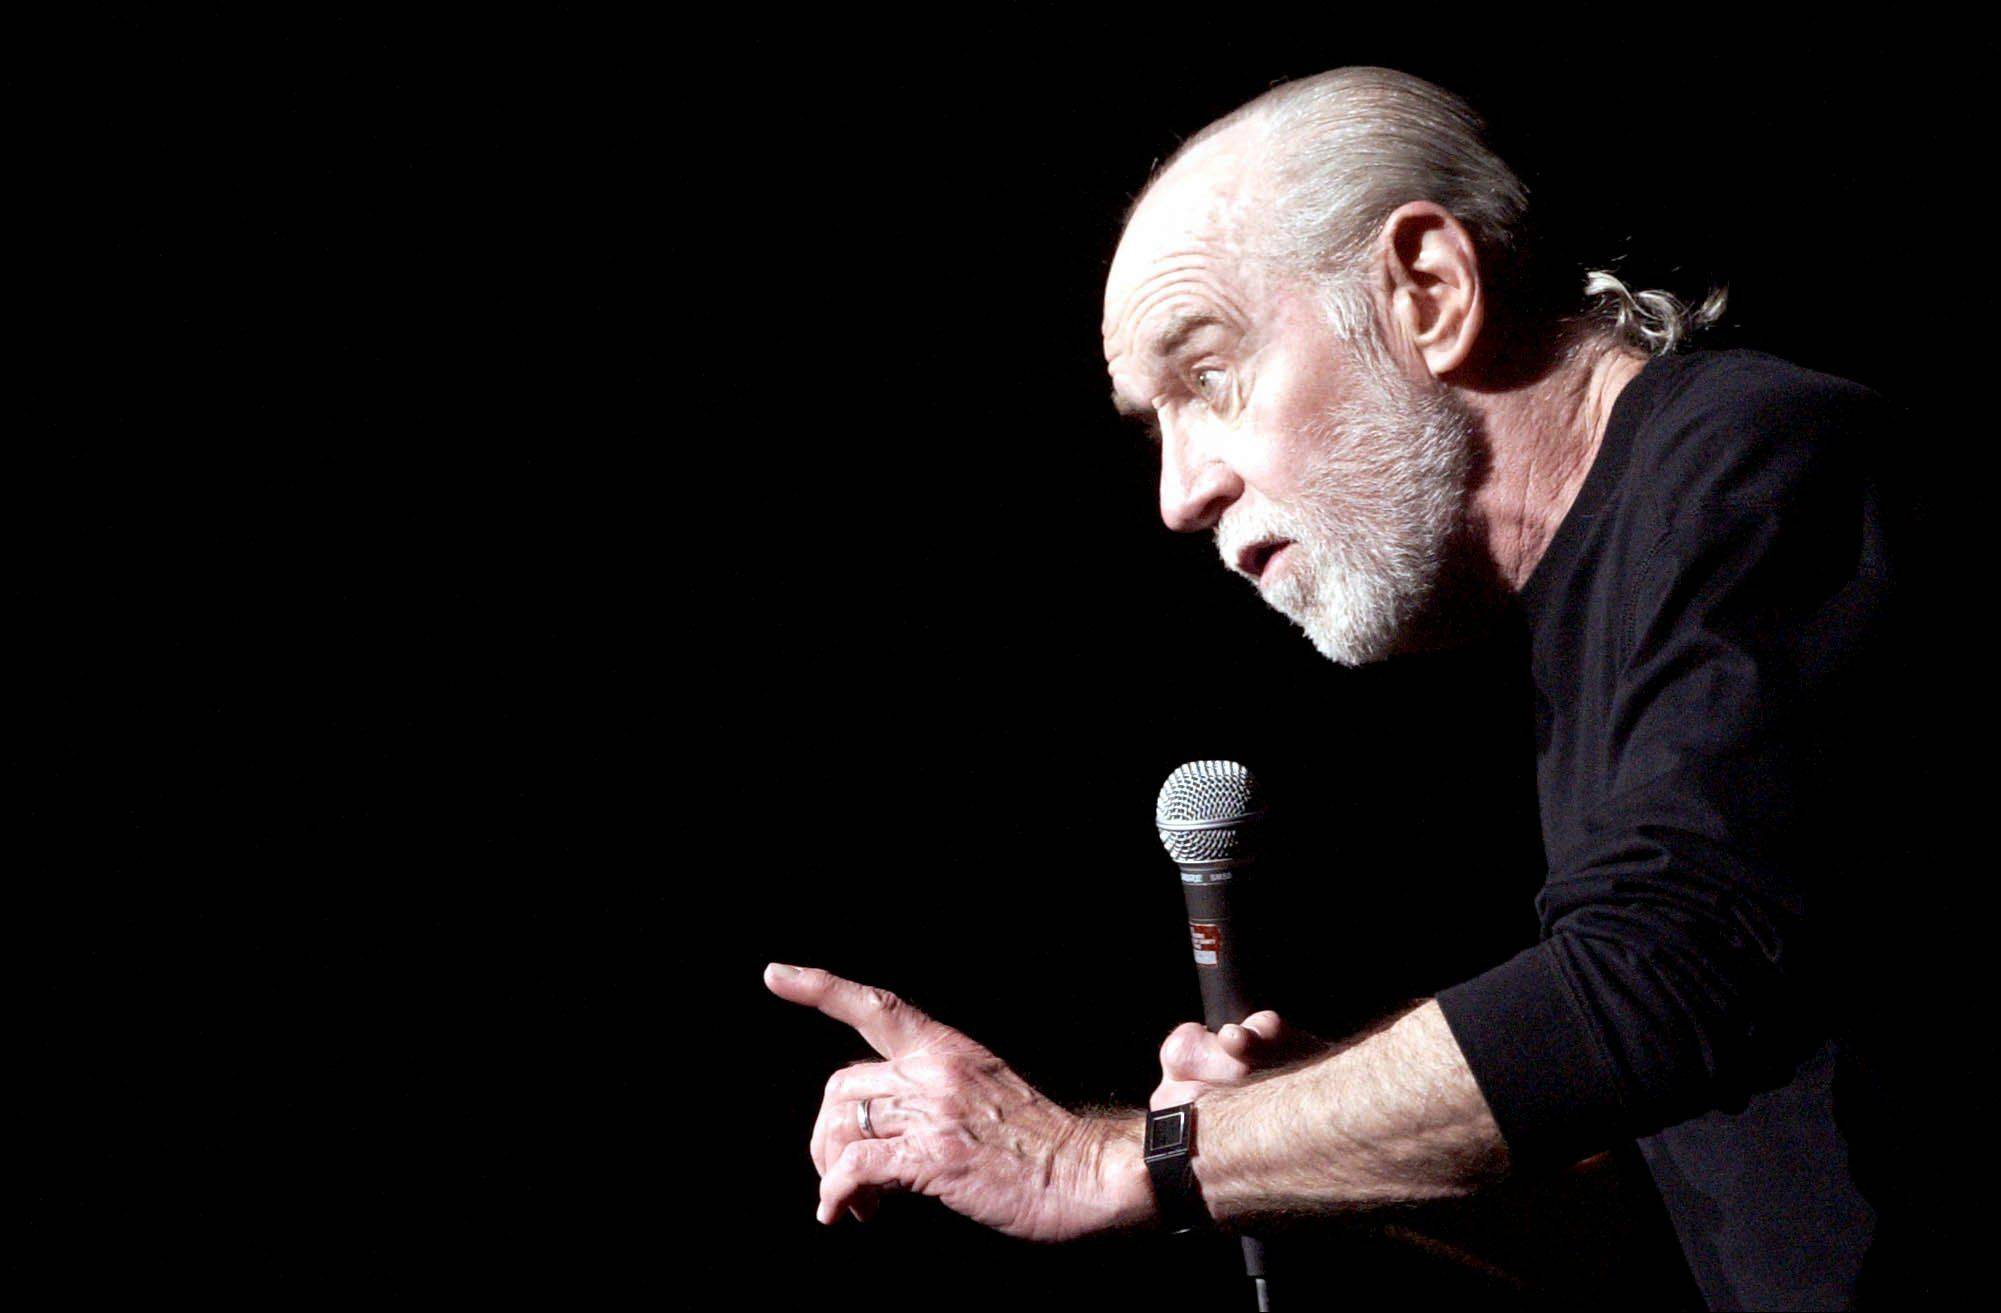 Among late comedian George Carlin's legendary bits was a dissection of the differences between baseball and football.